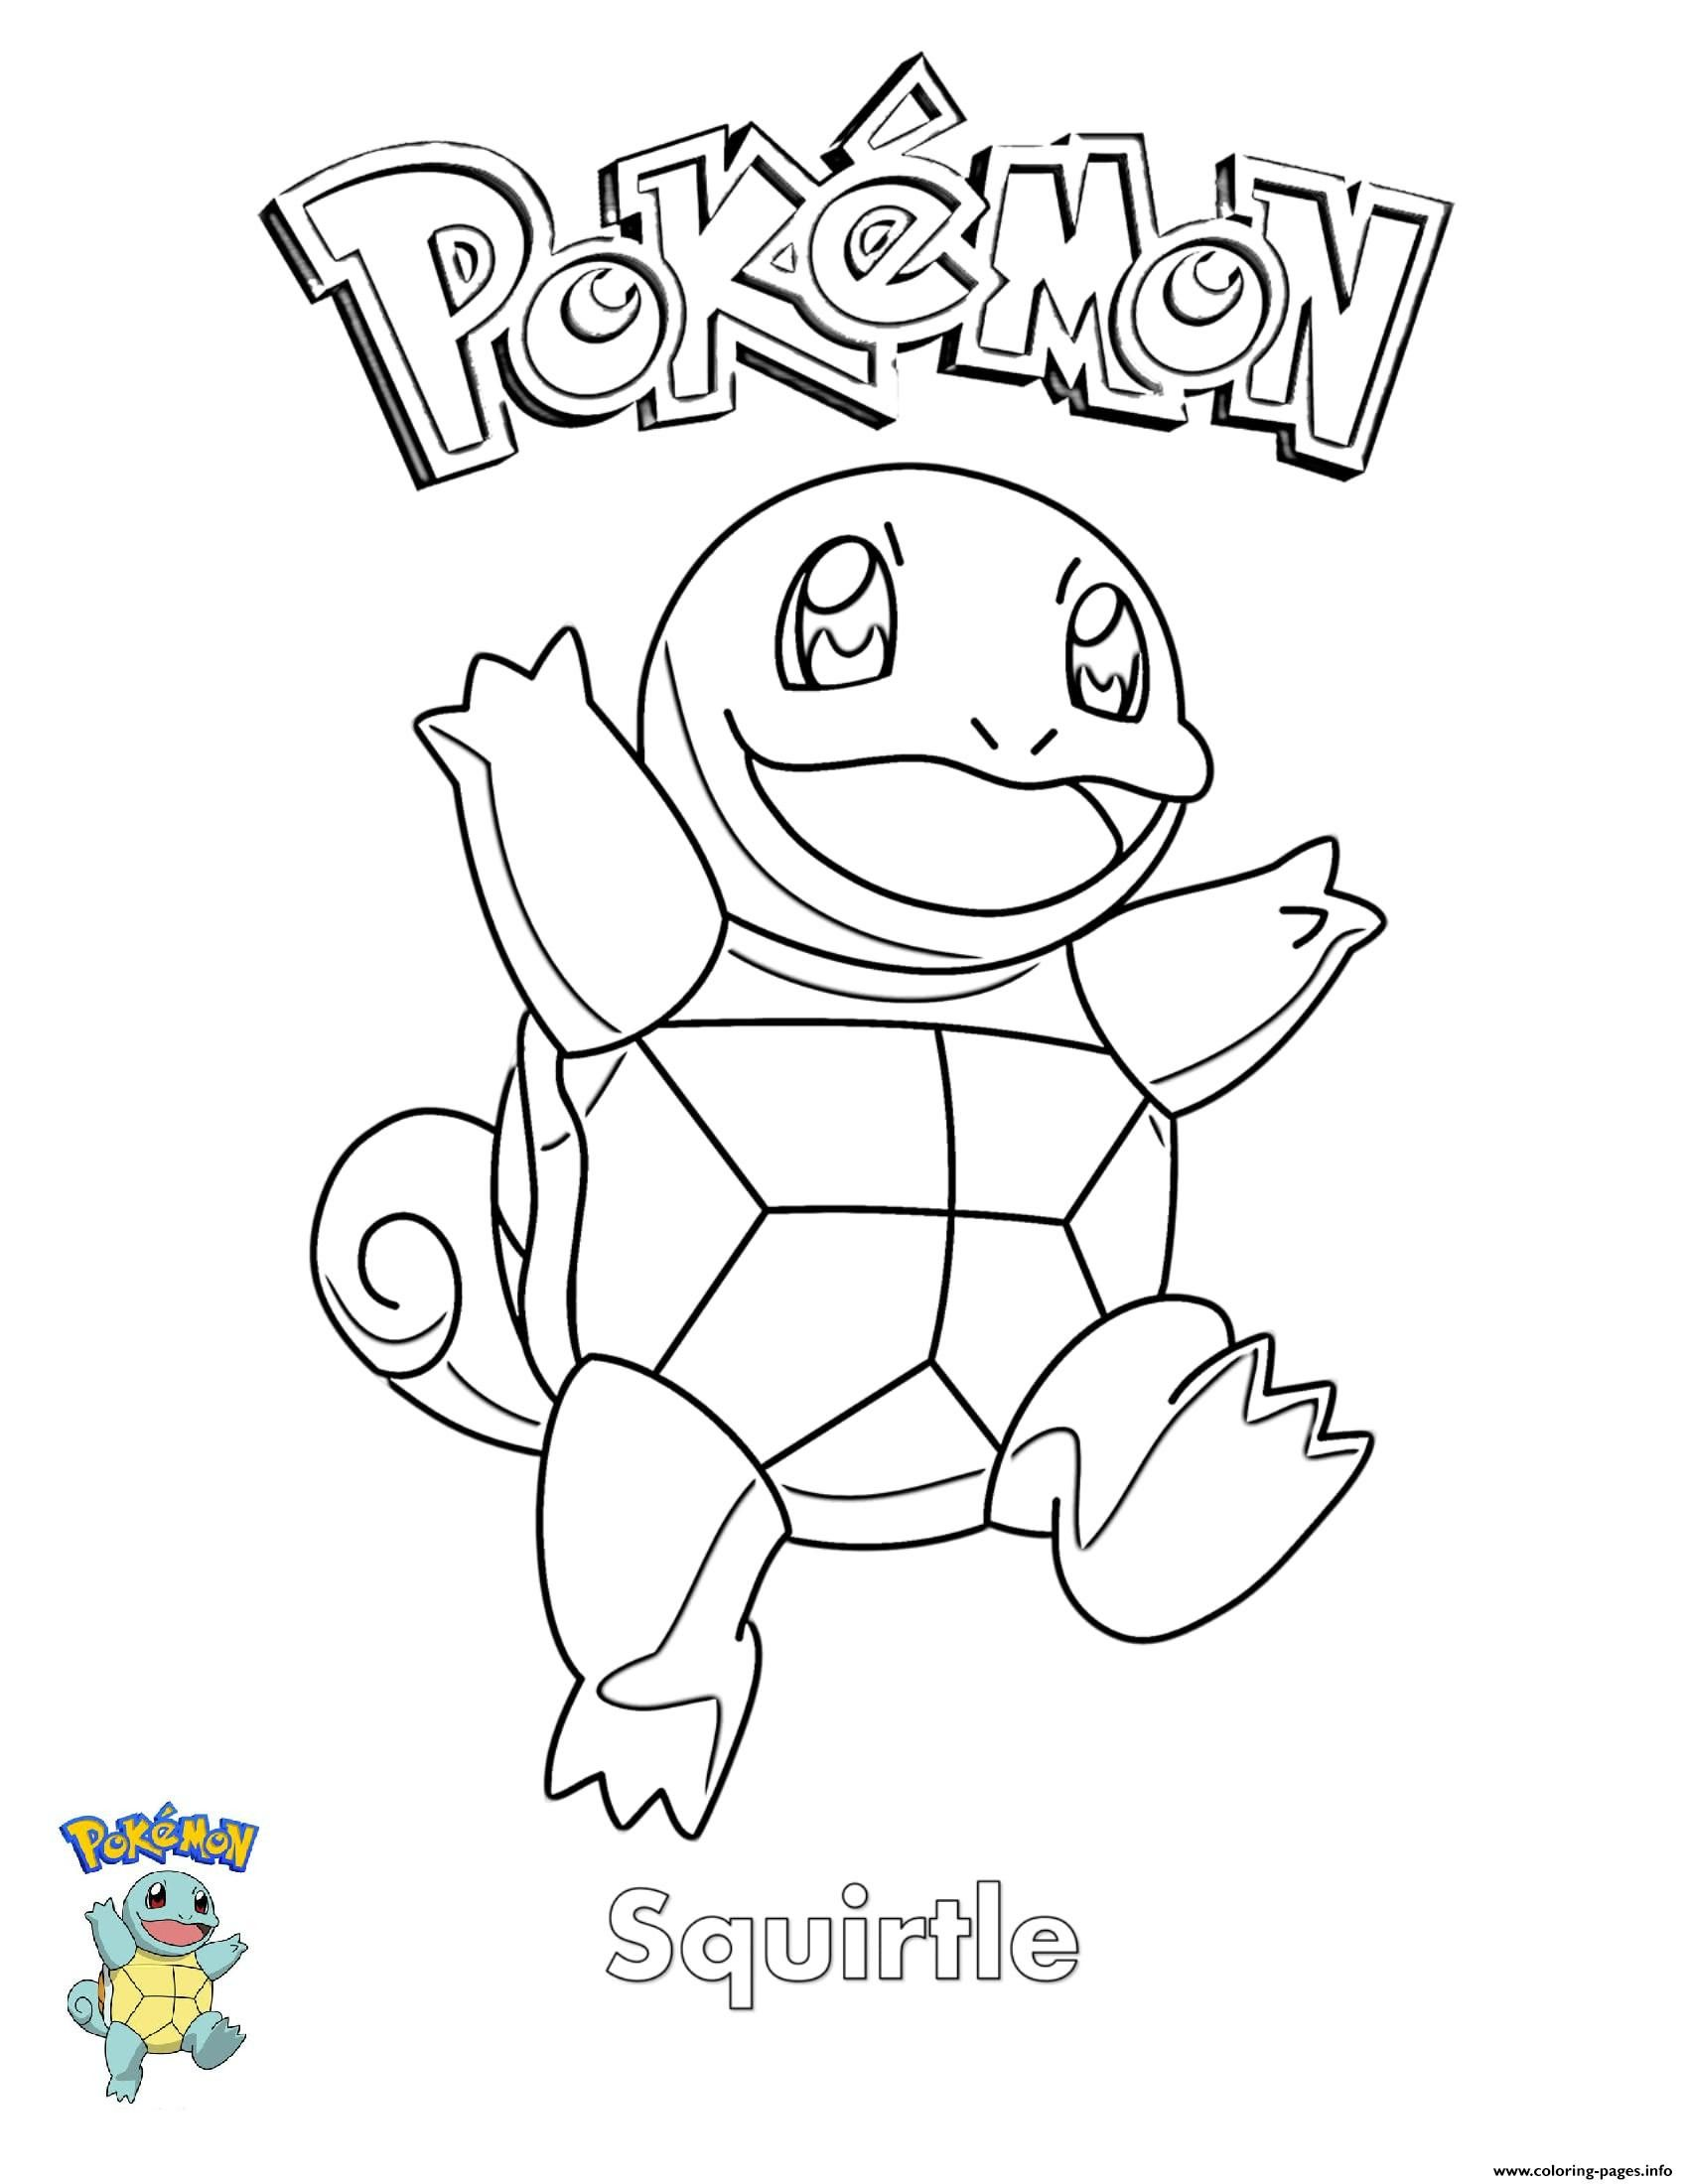 Pokemon Coloring Page Squirtle Youngandtae Com Coloring Pages For Kids Pokemon Coloring Cool Coloring Pages